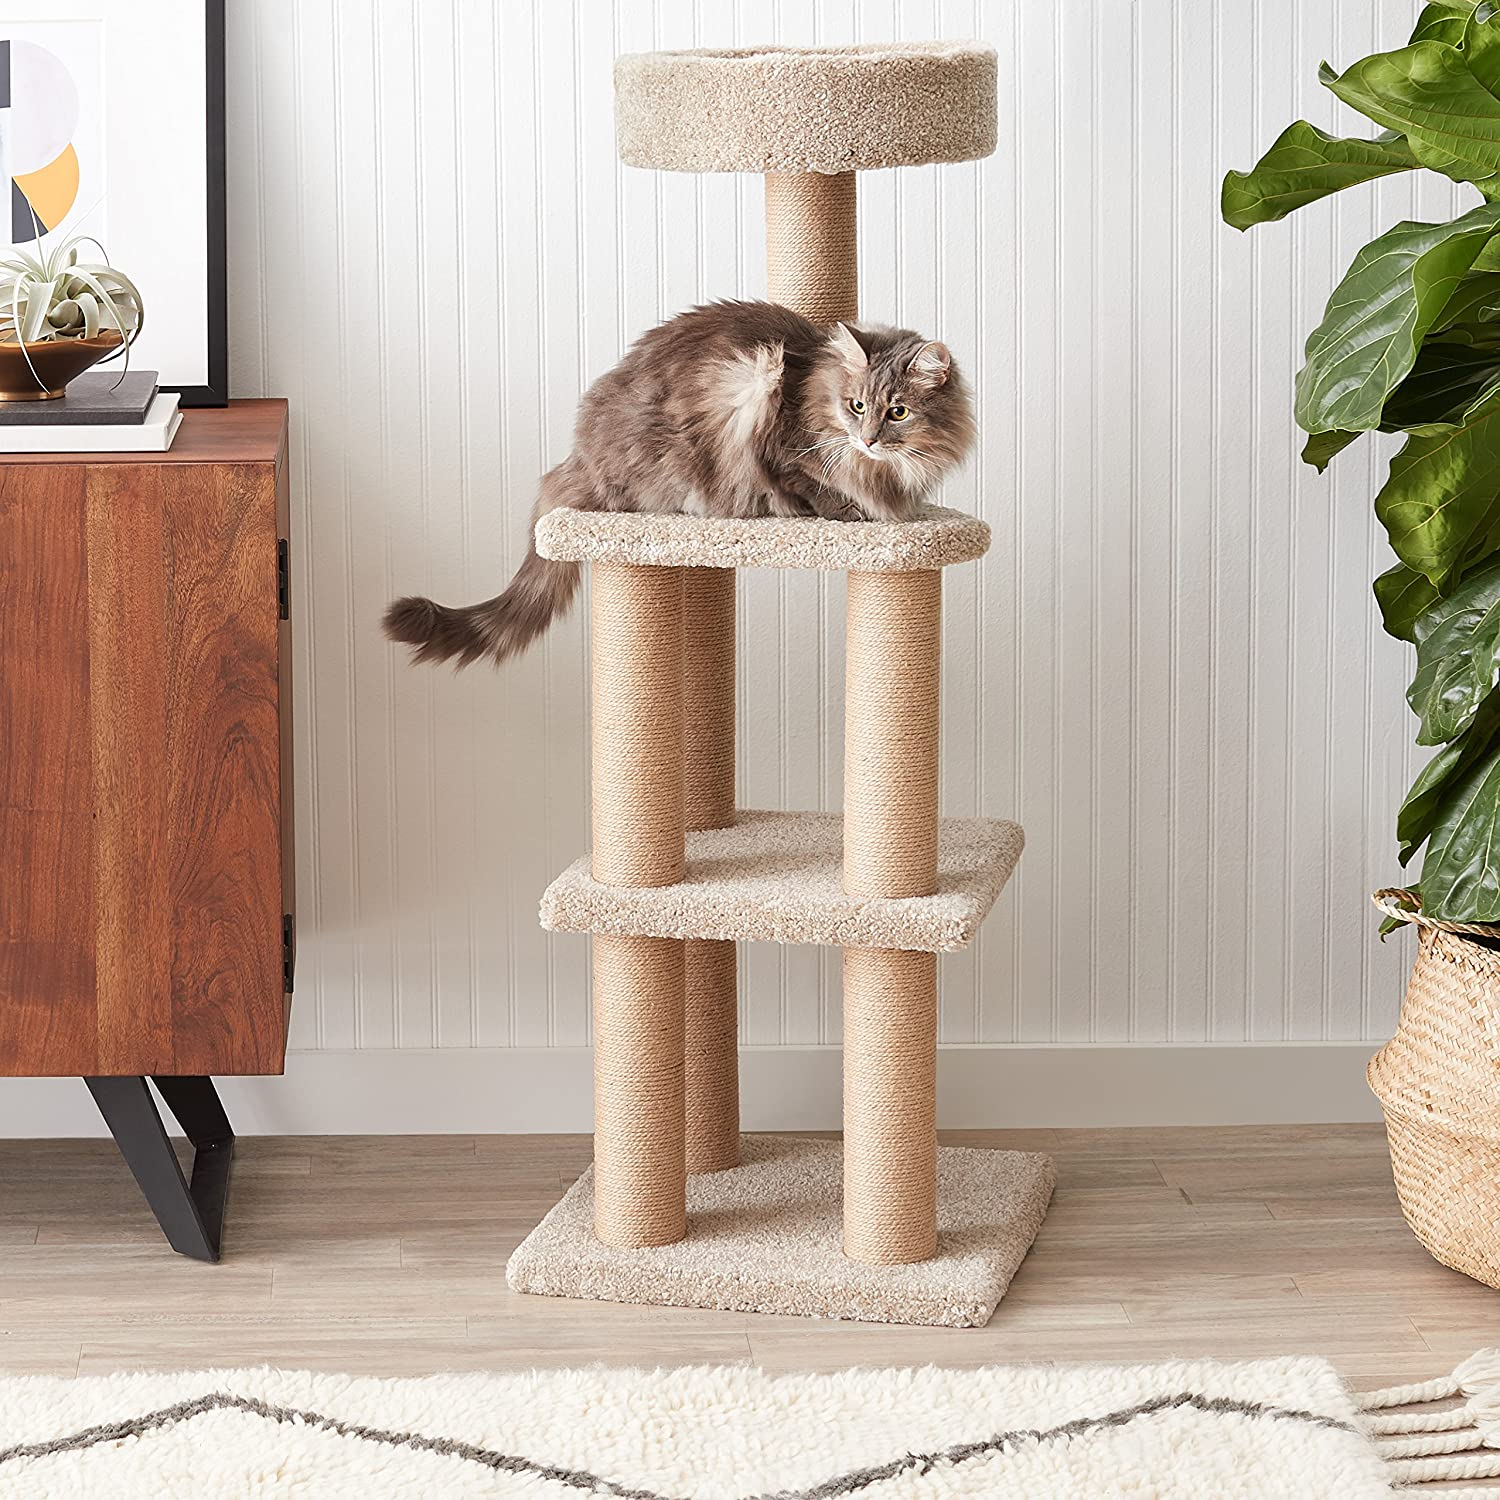 Best Cat Condos for Kitties